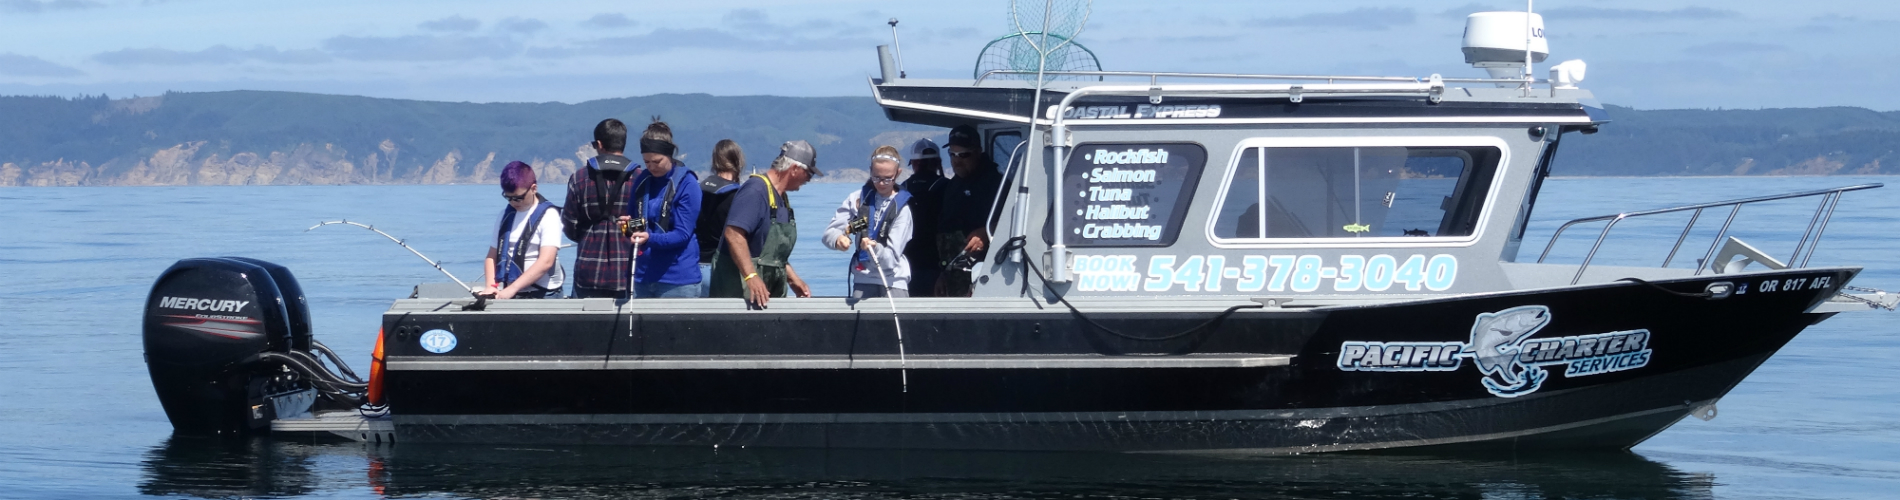 Pacific charter services guided fishing trips for Coos bay fishing charters